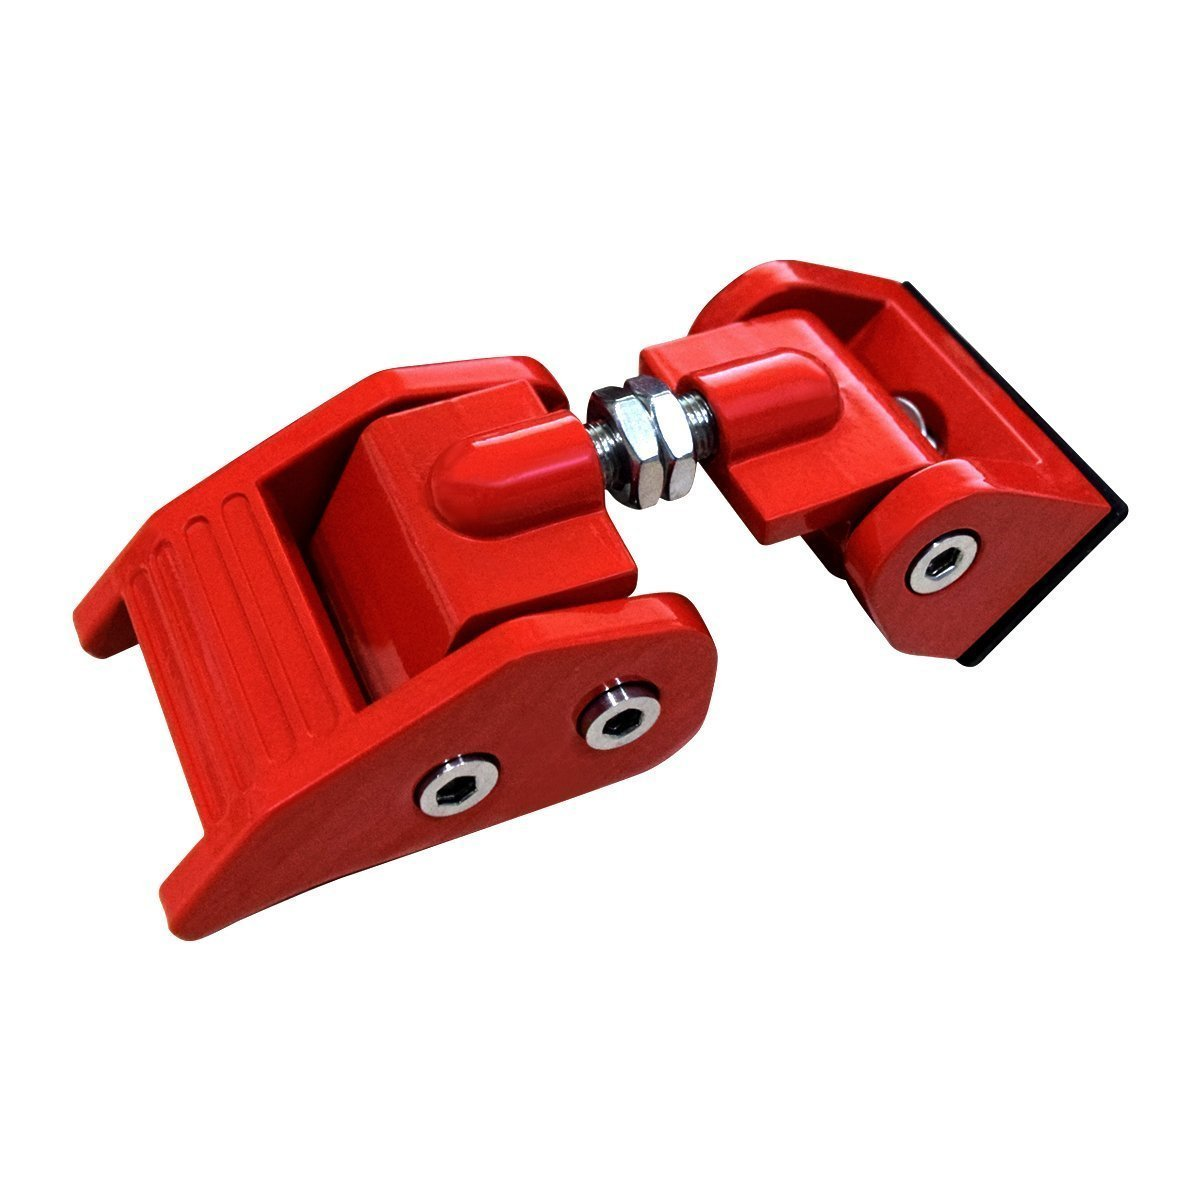 Red Aluminum Hood Catch Kit for Jeep Wrangler JK 07-18